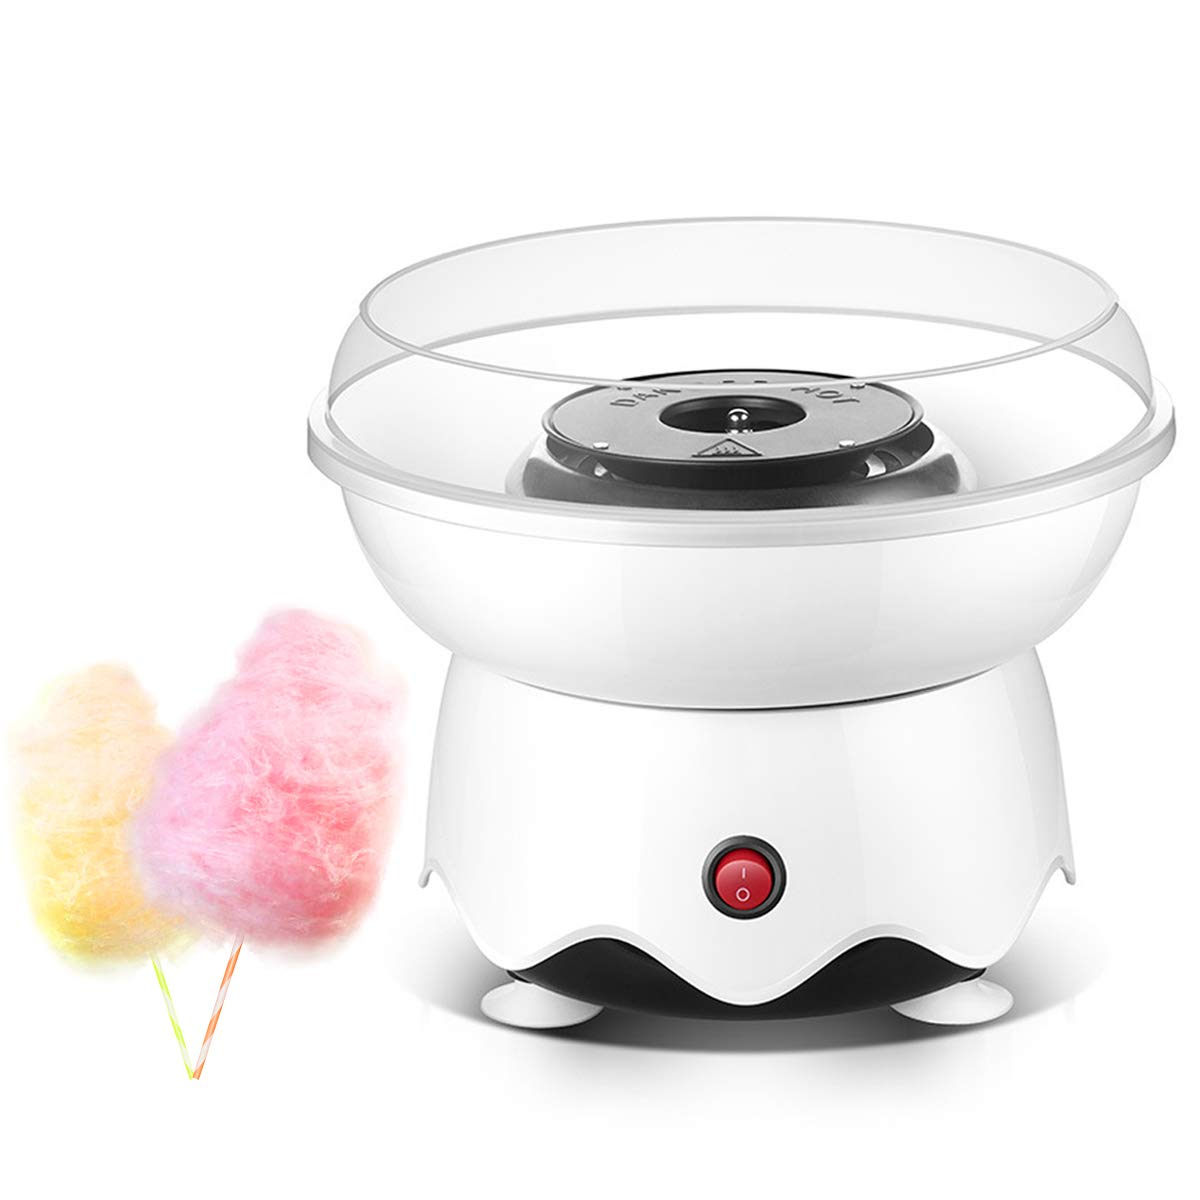 Cotton Candy Maker,Christmas Gift,Homemade Cotton Candy Machine for Birthday Family Party,Portable Candy Floss Machine with 10 Cones and Sugar Scoop